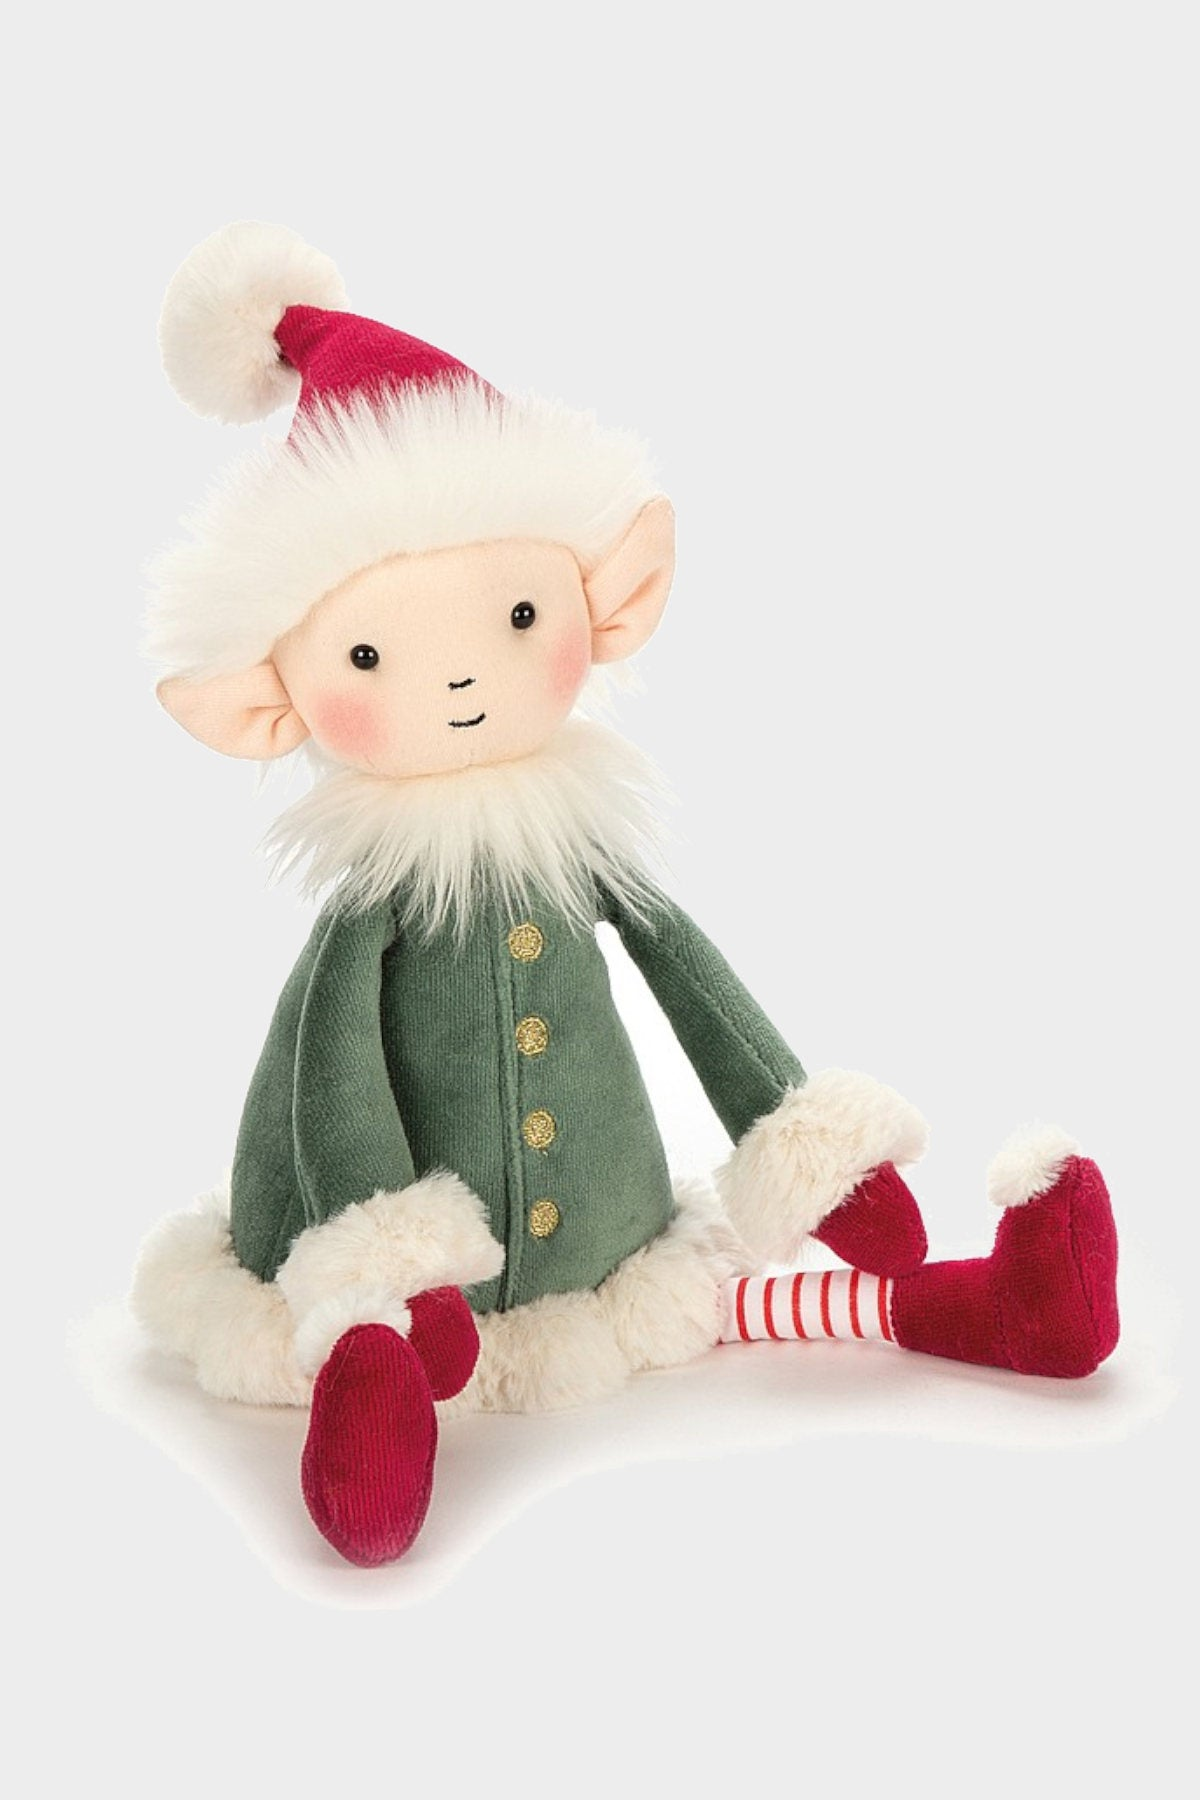 jellycat leffy elf medium red green white cute